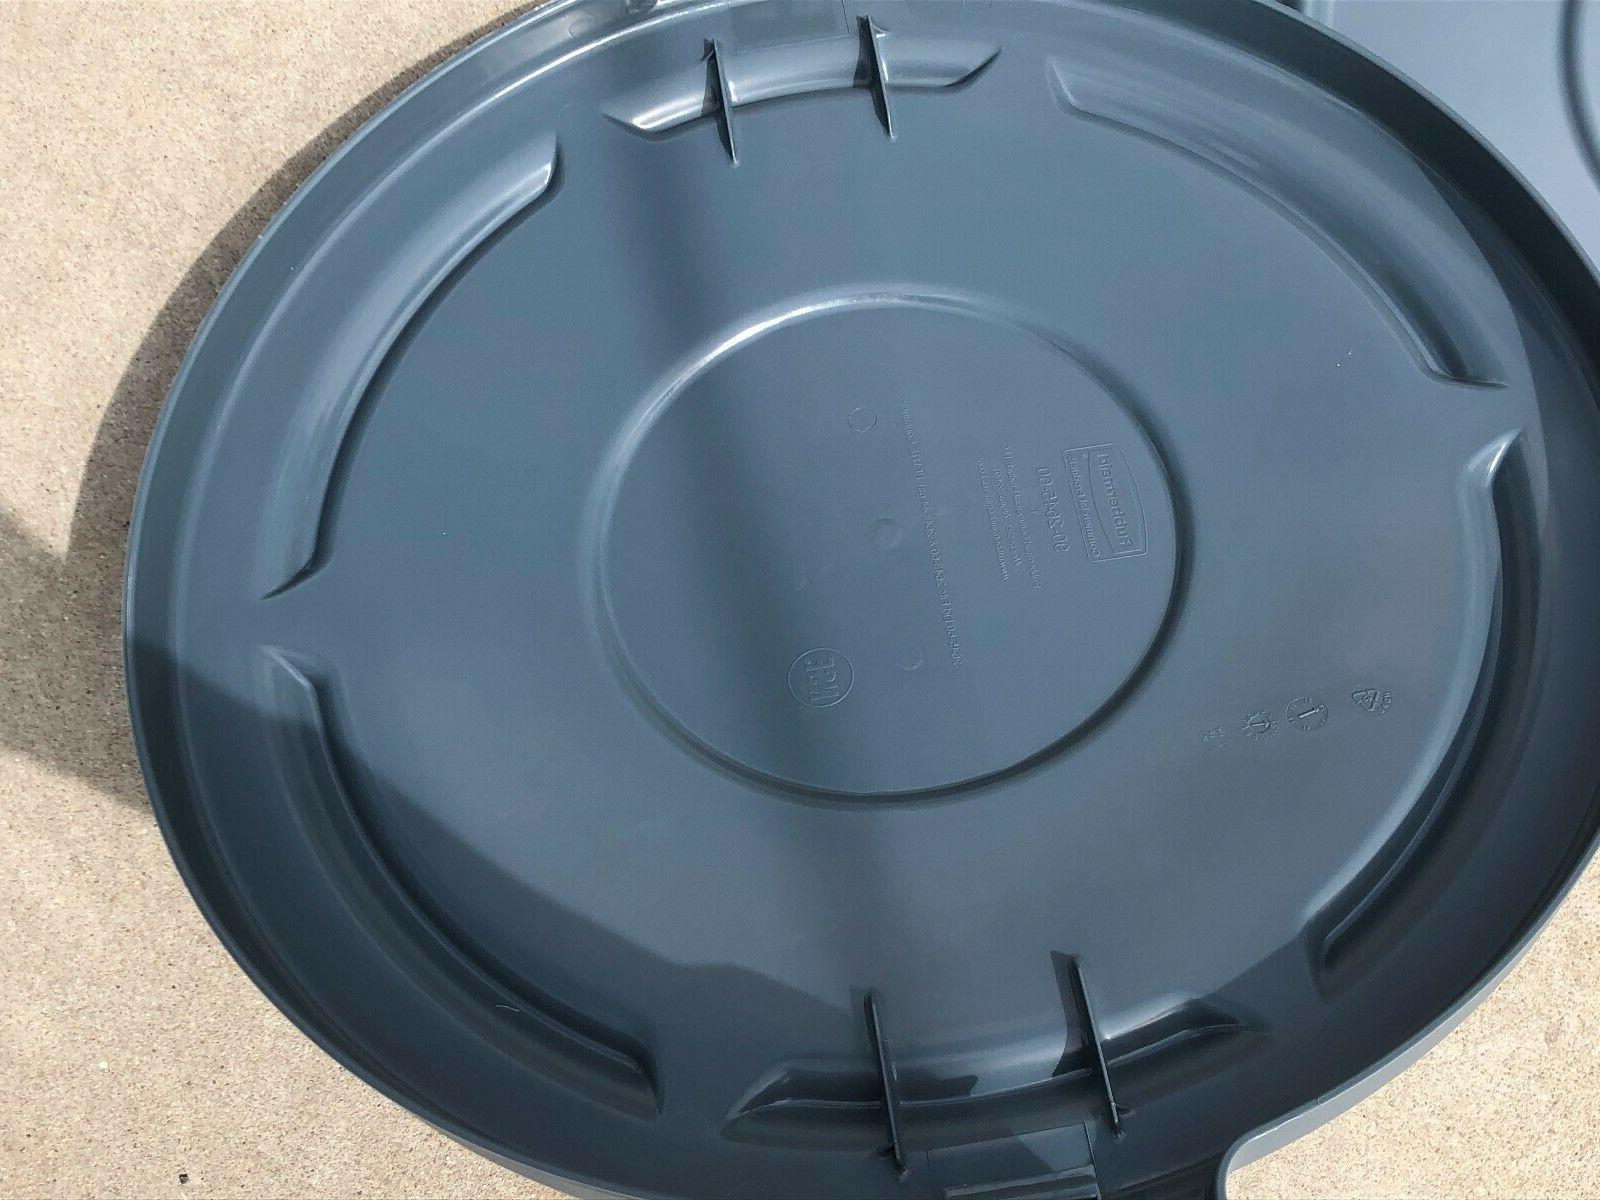 2 Rubbermaid Trash Round, Gray, 44 Gallon, Gray,